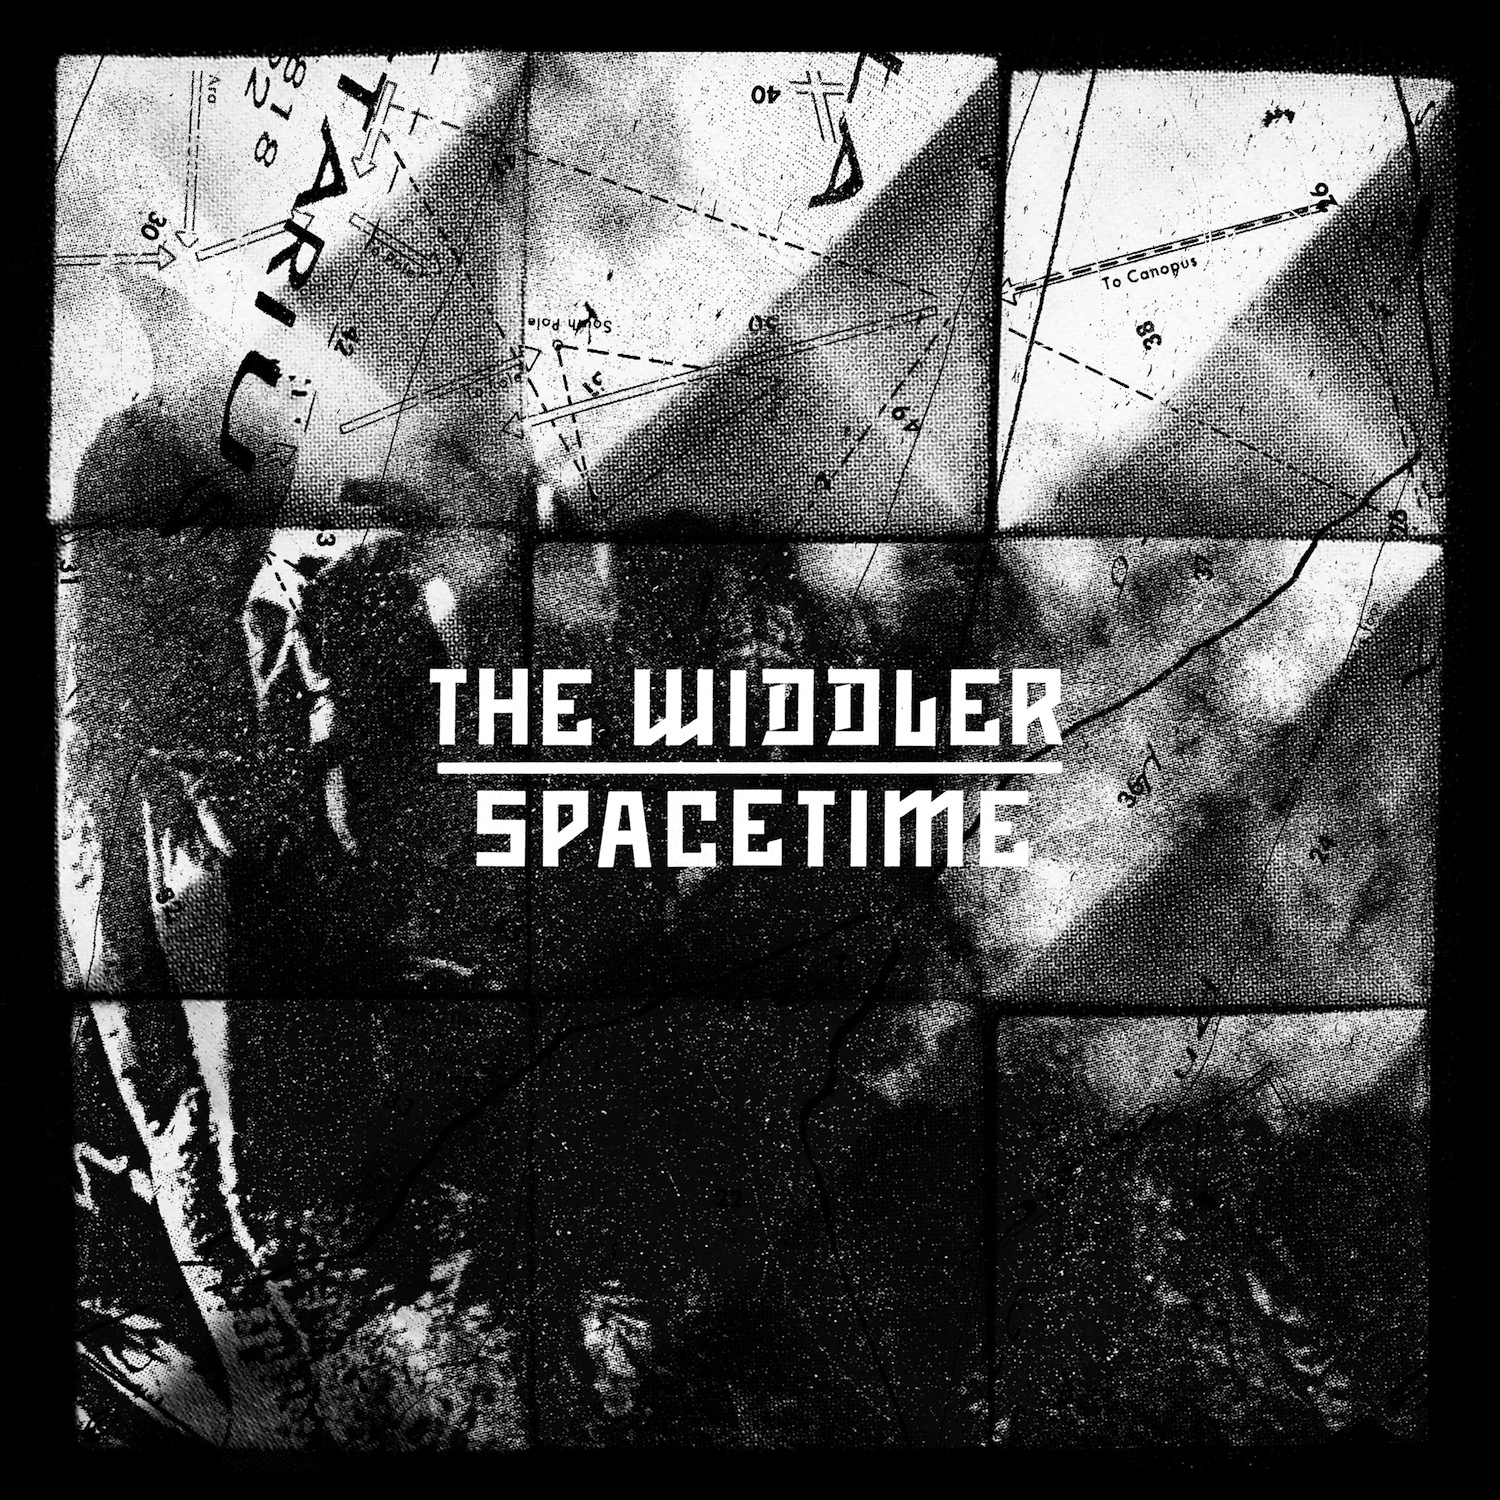 The Widdler (Spacetime digital artwork)